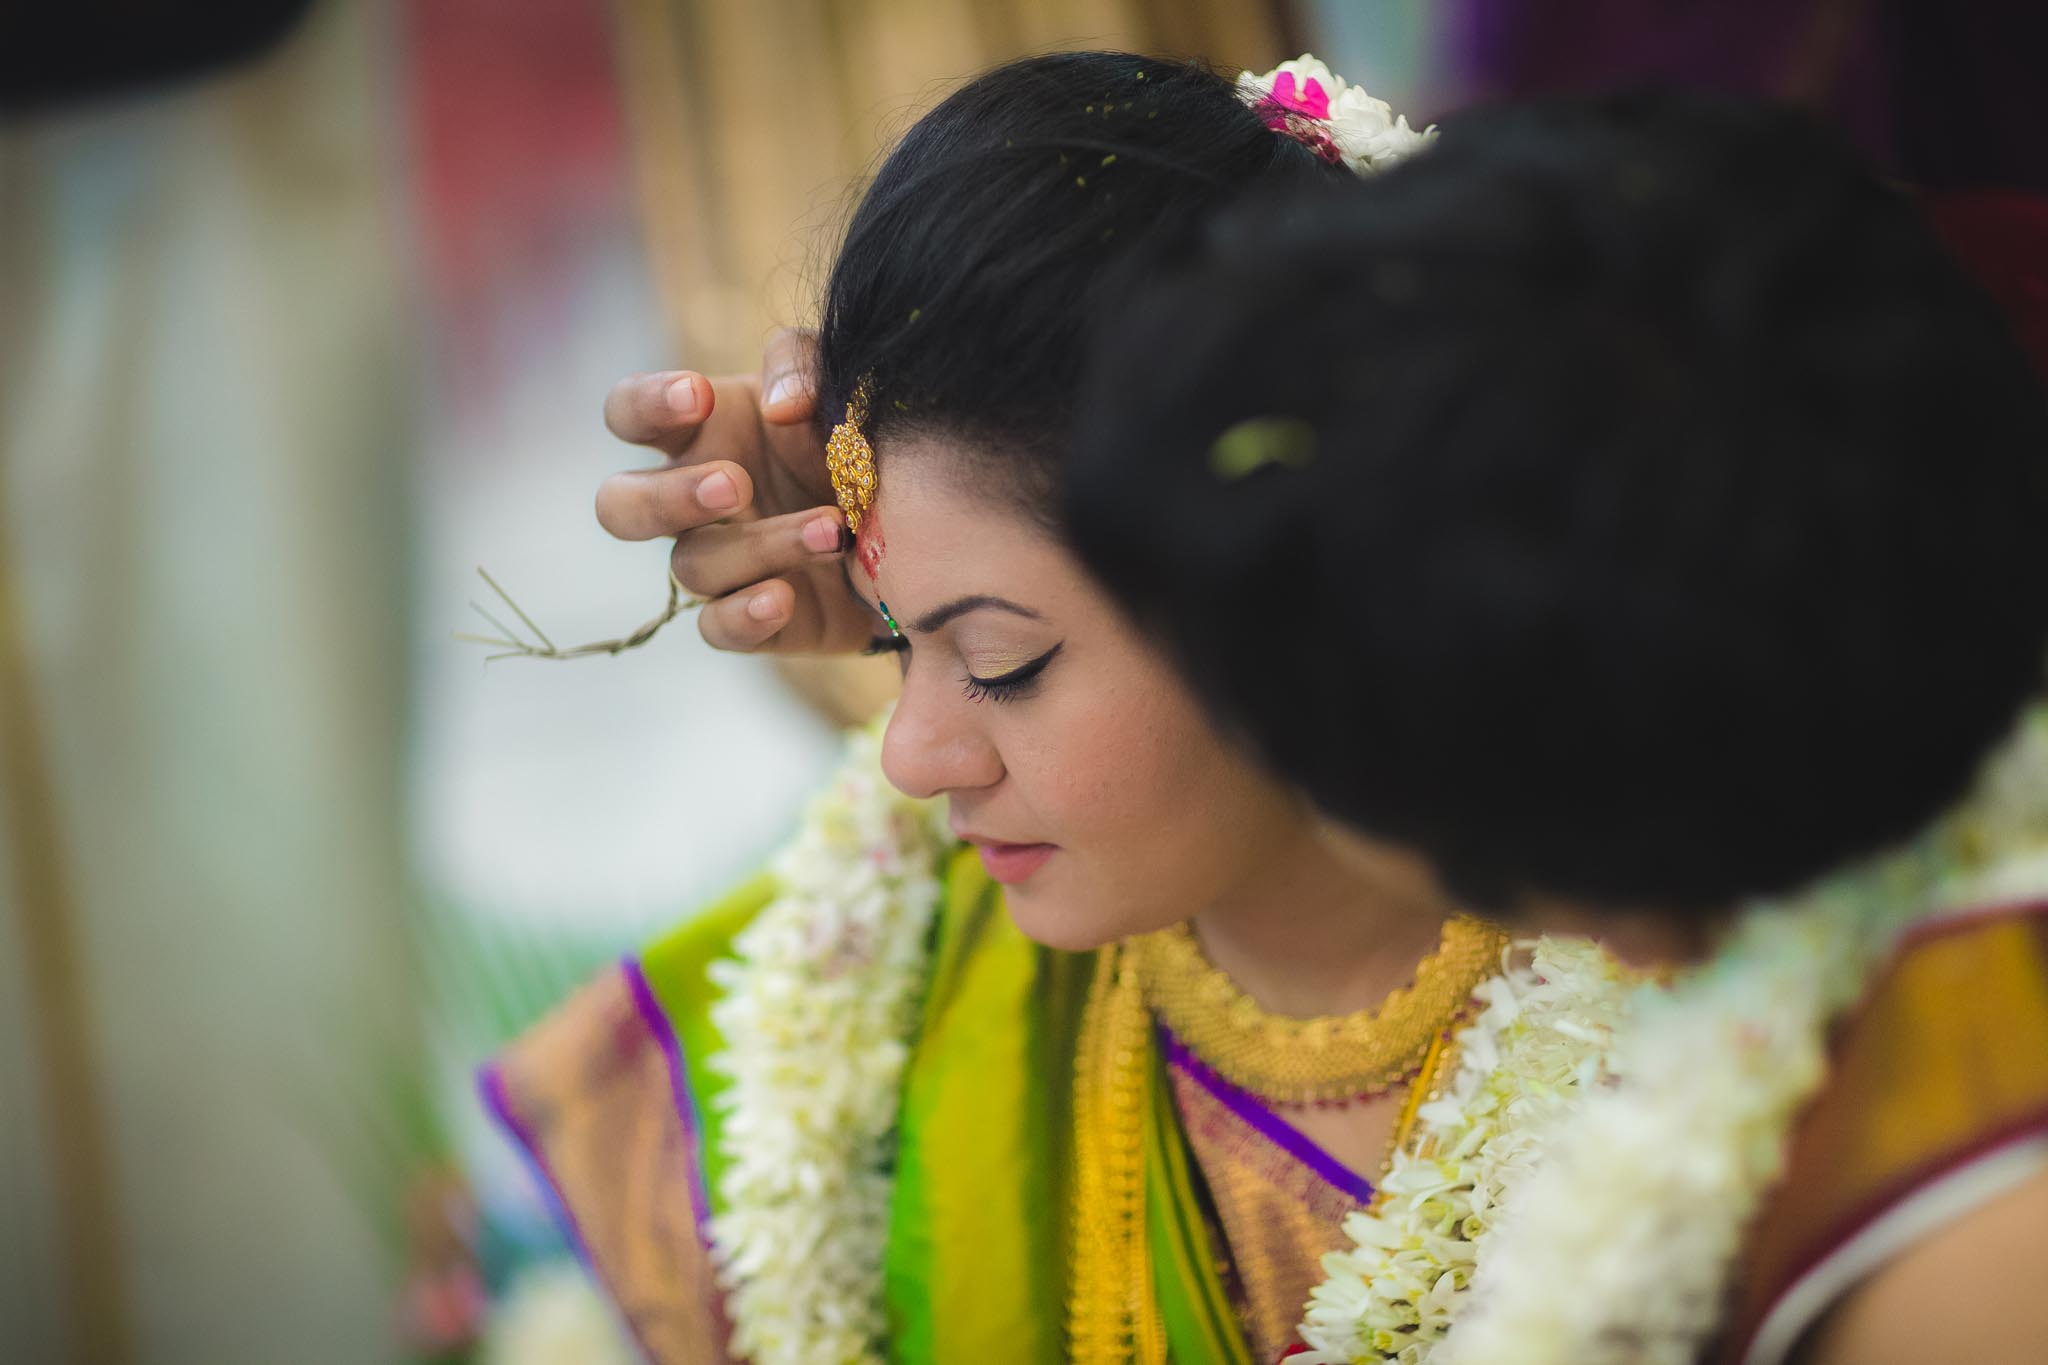 What-is-candid-wedding-photography-Why-should-one-hire-a-candid-photographer-1